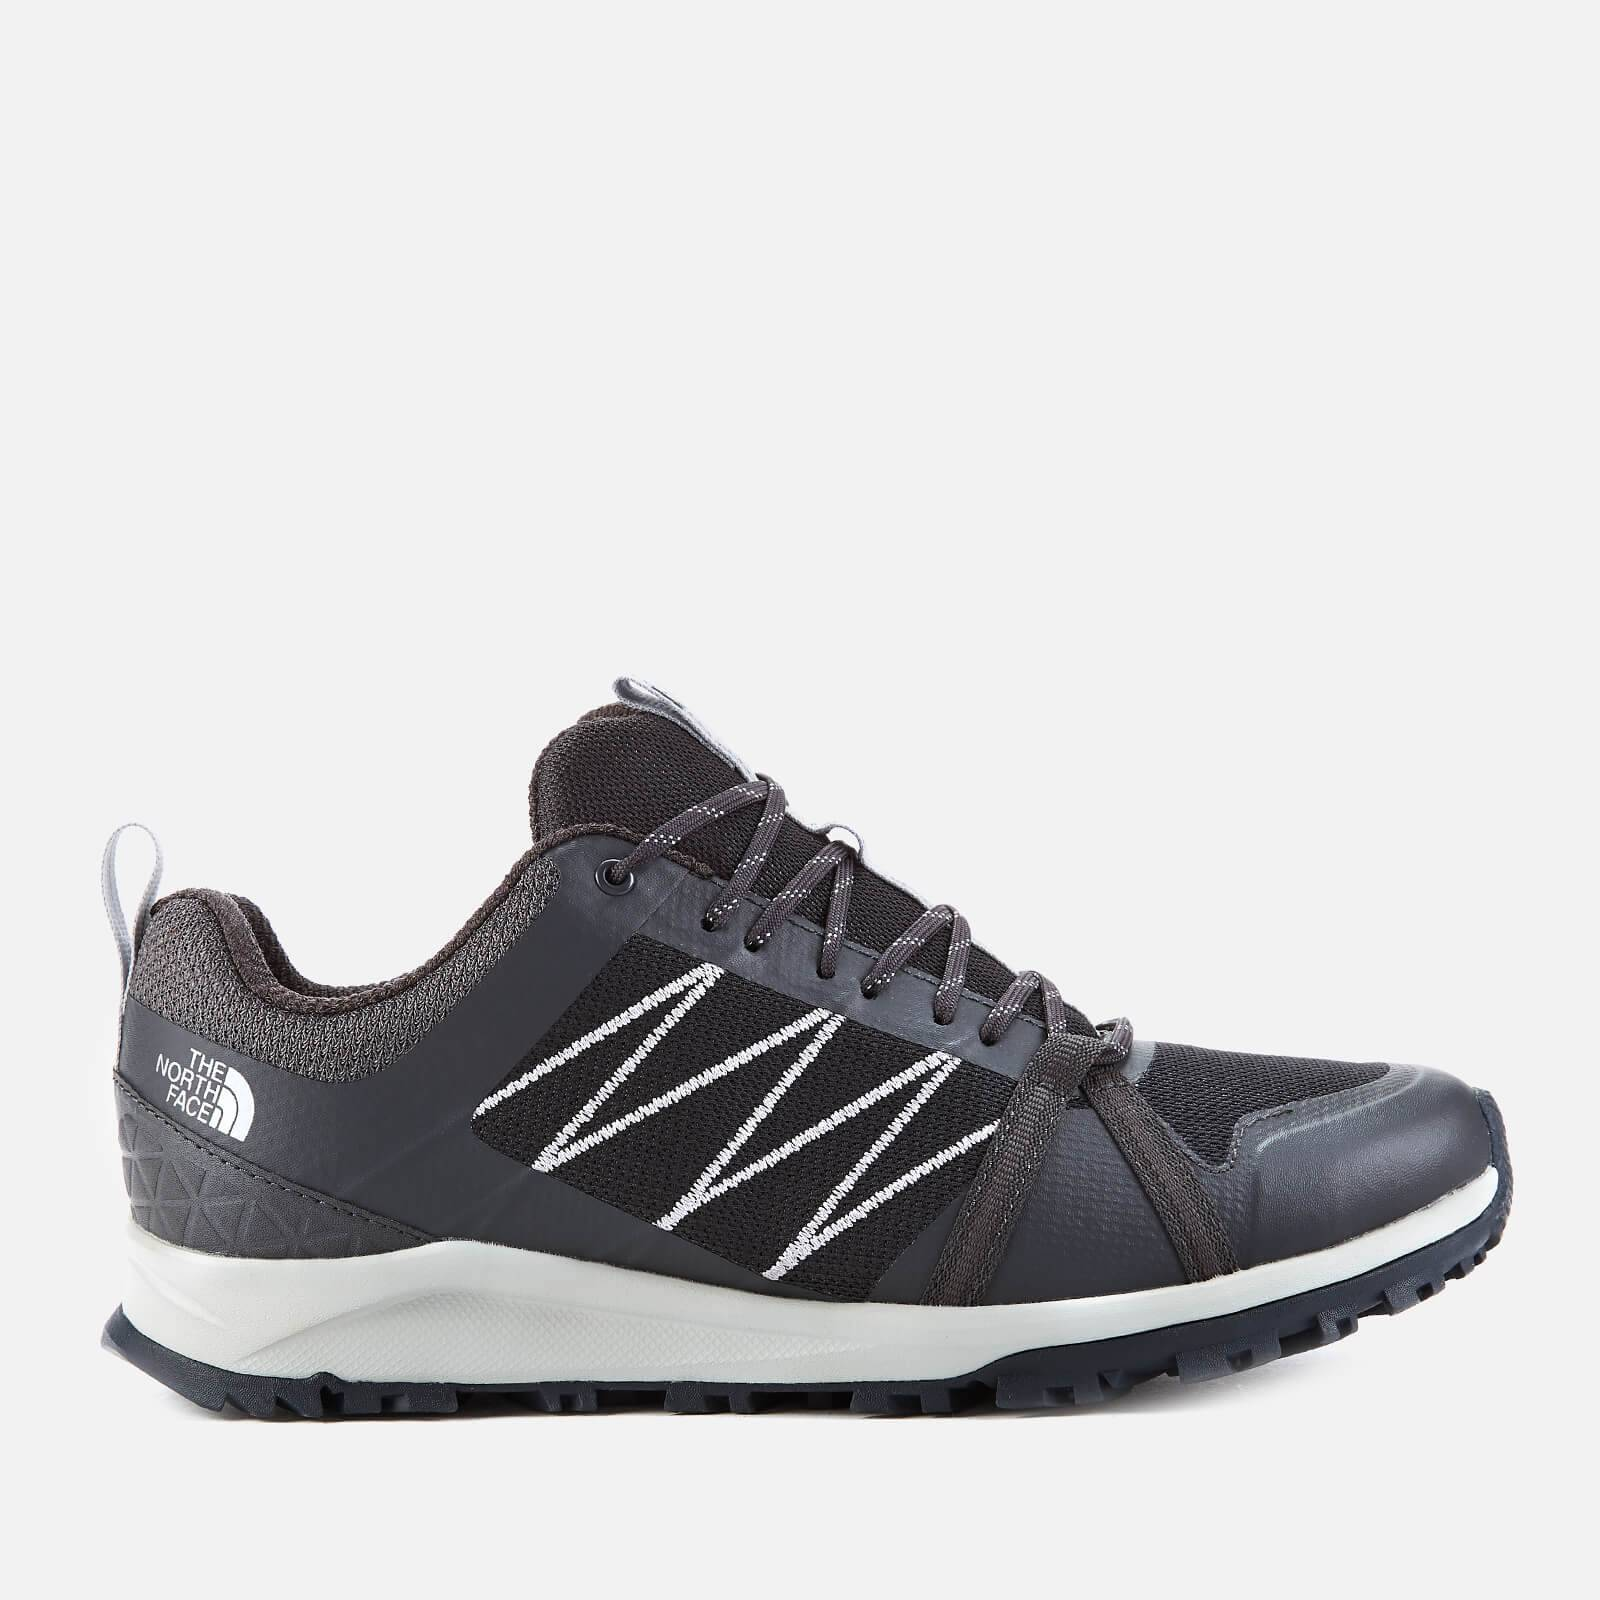 The North Face Men's Litewave Fastpack 2 Trainers - Ebony Grey/High Rise Grey - UK 6